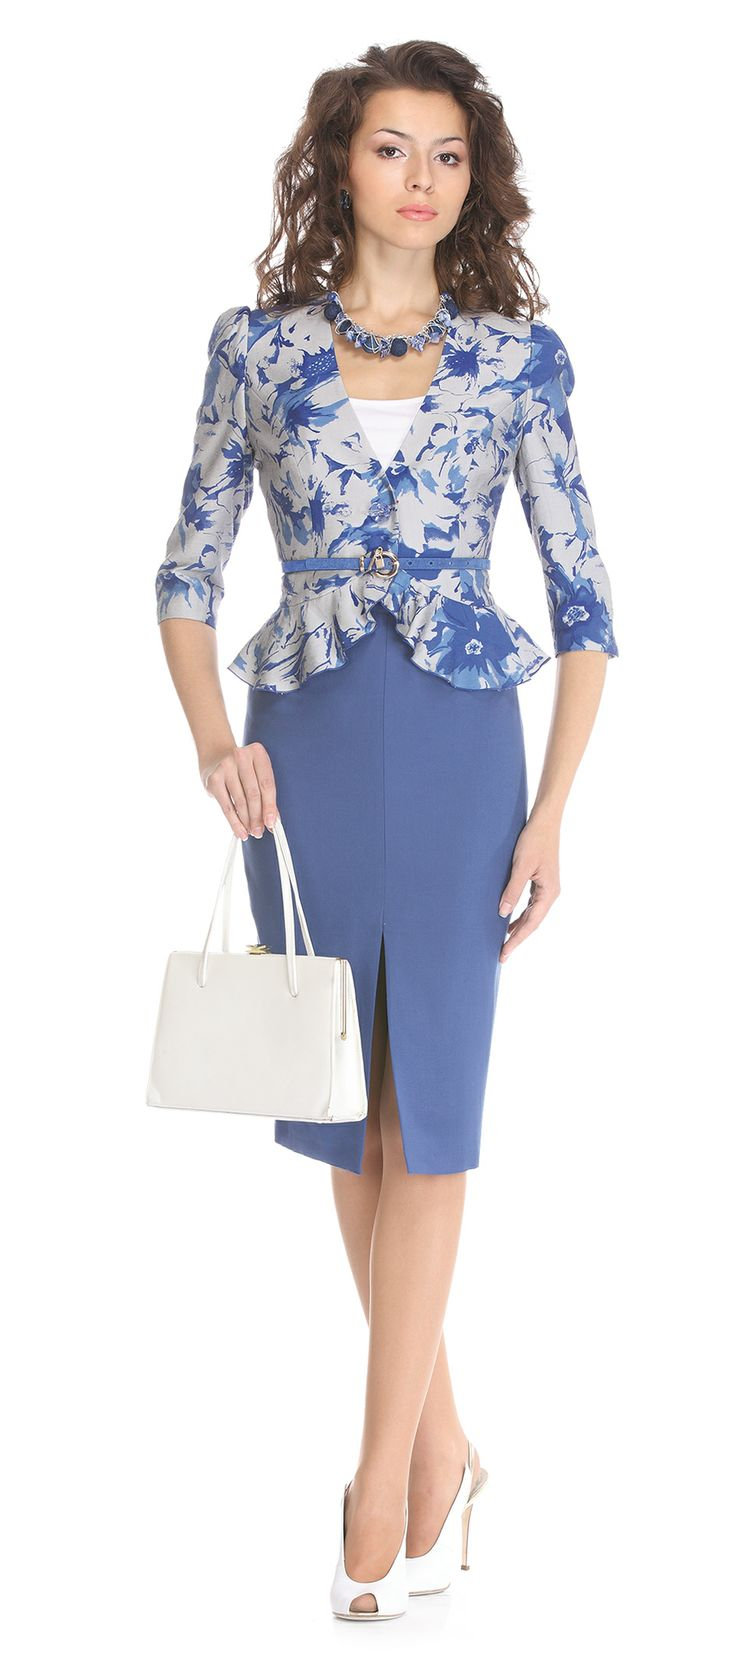 Jacket, top, skirt ETNA from Noche Mio